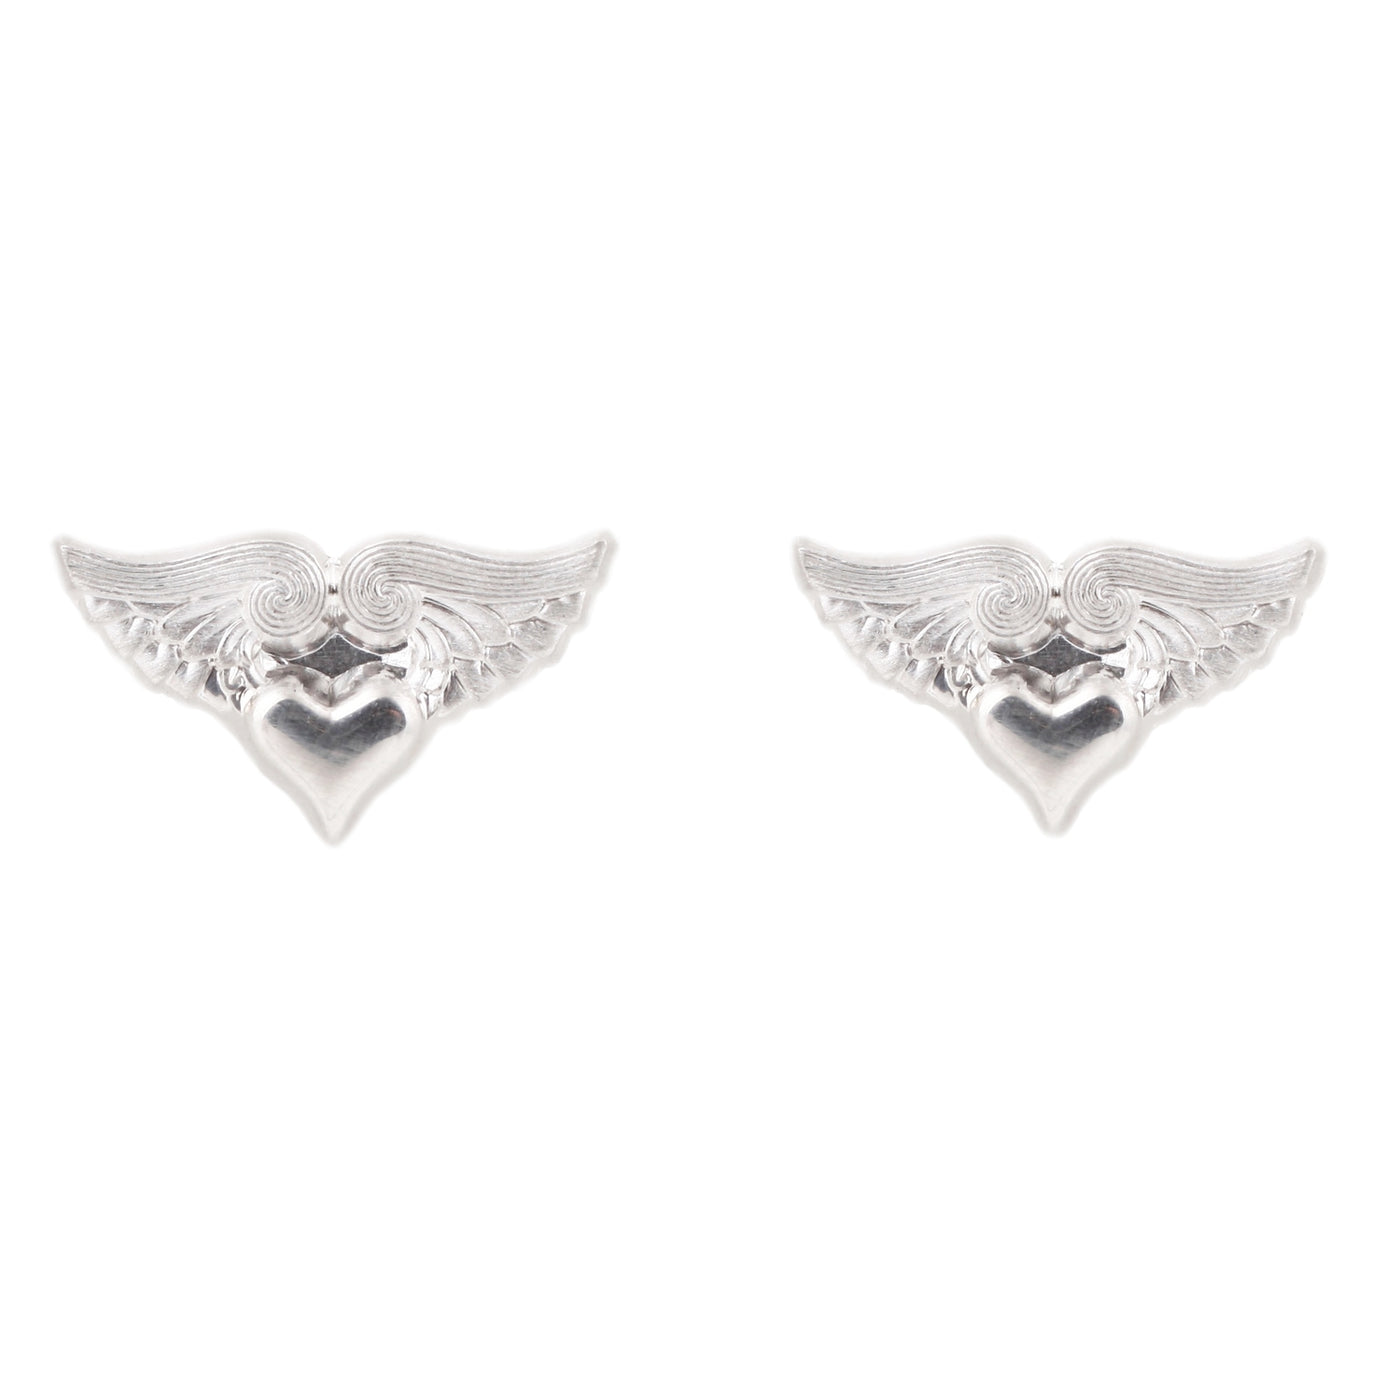 Anthony Lent Silver Flying Heart Stud Earrings